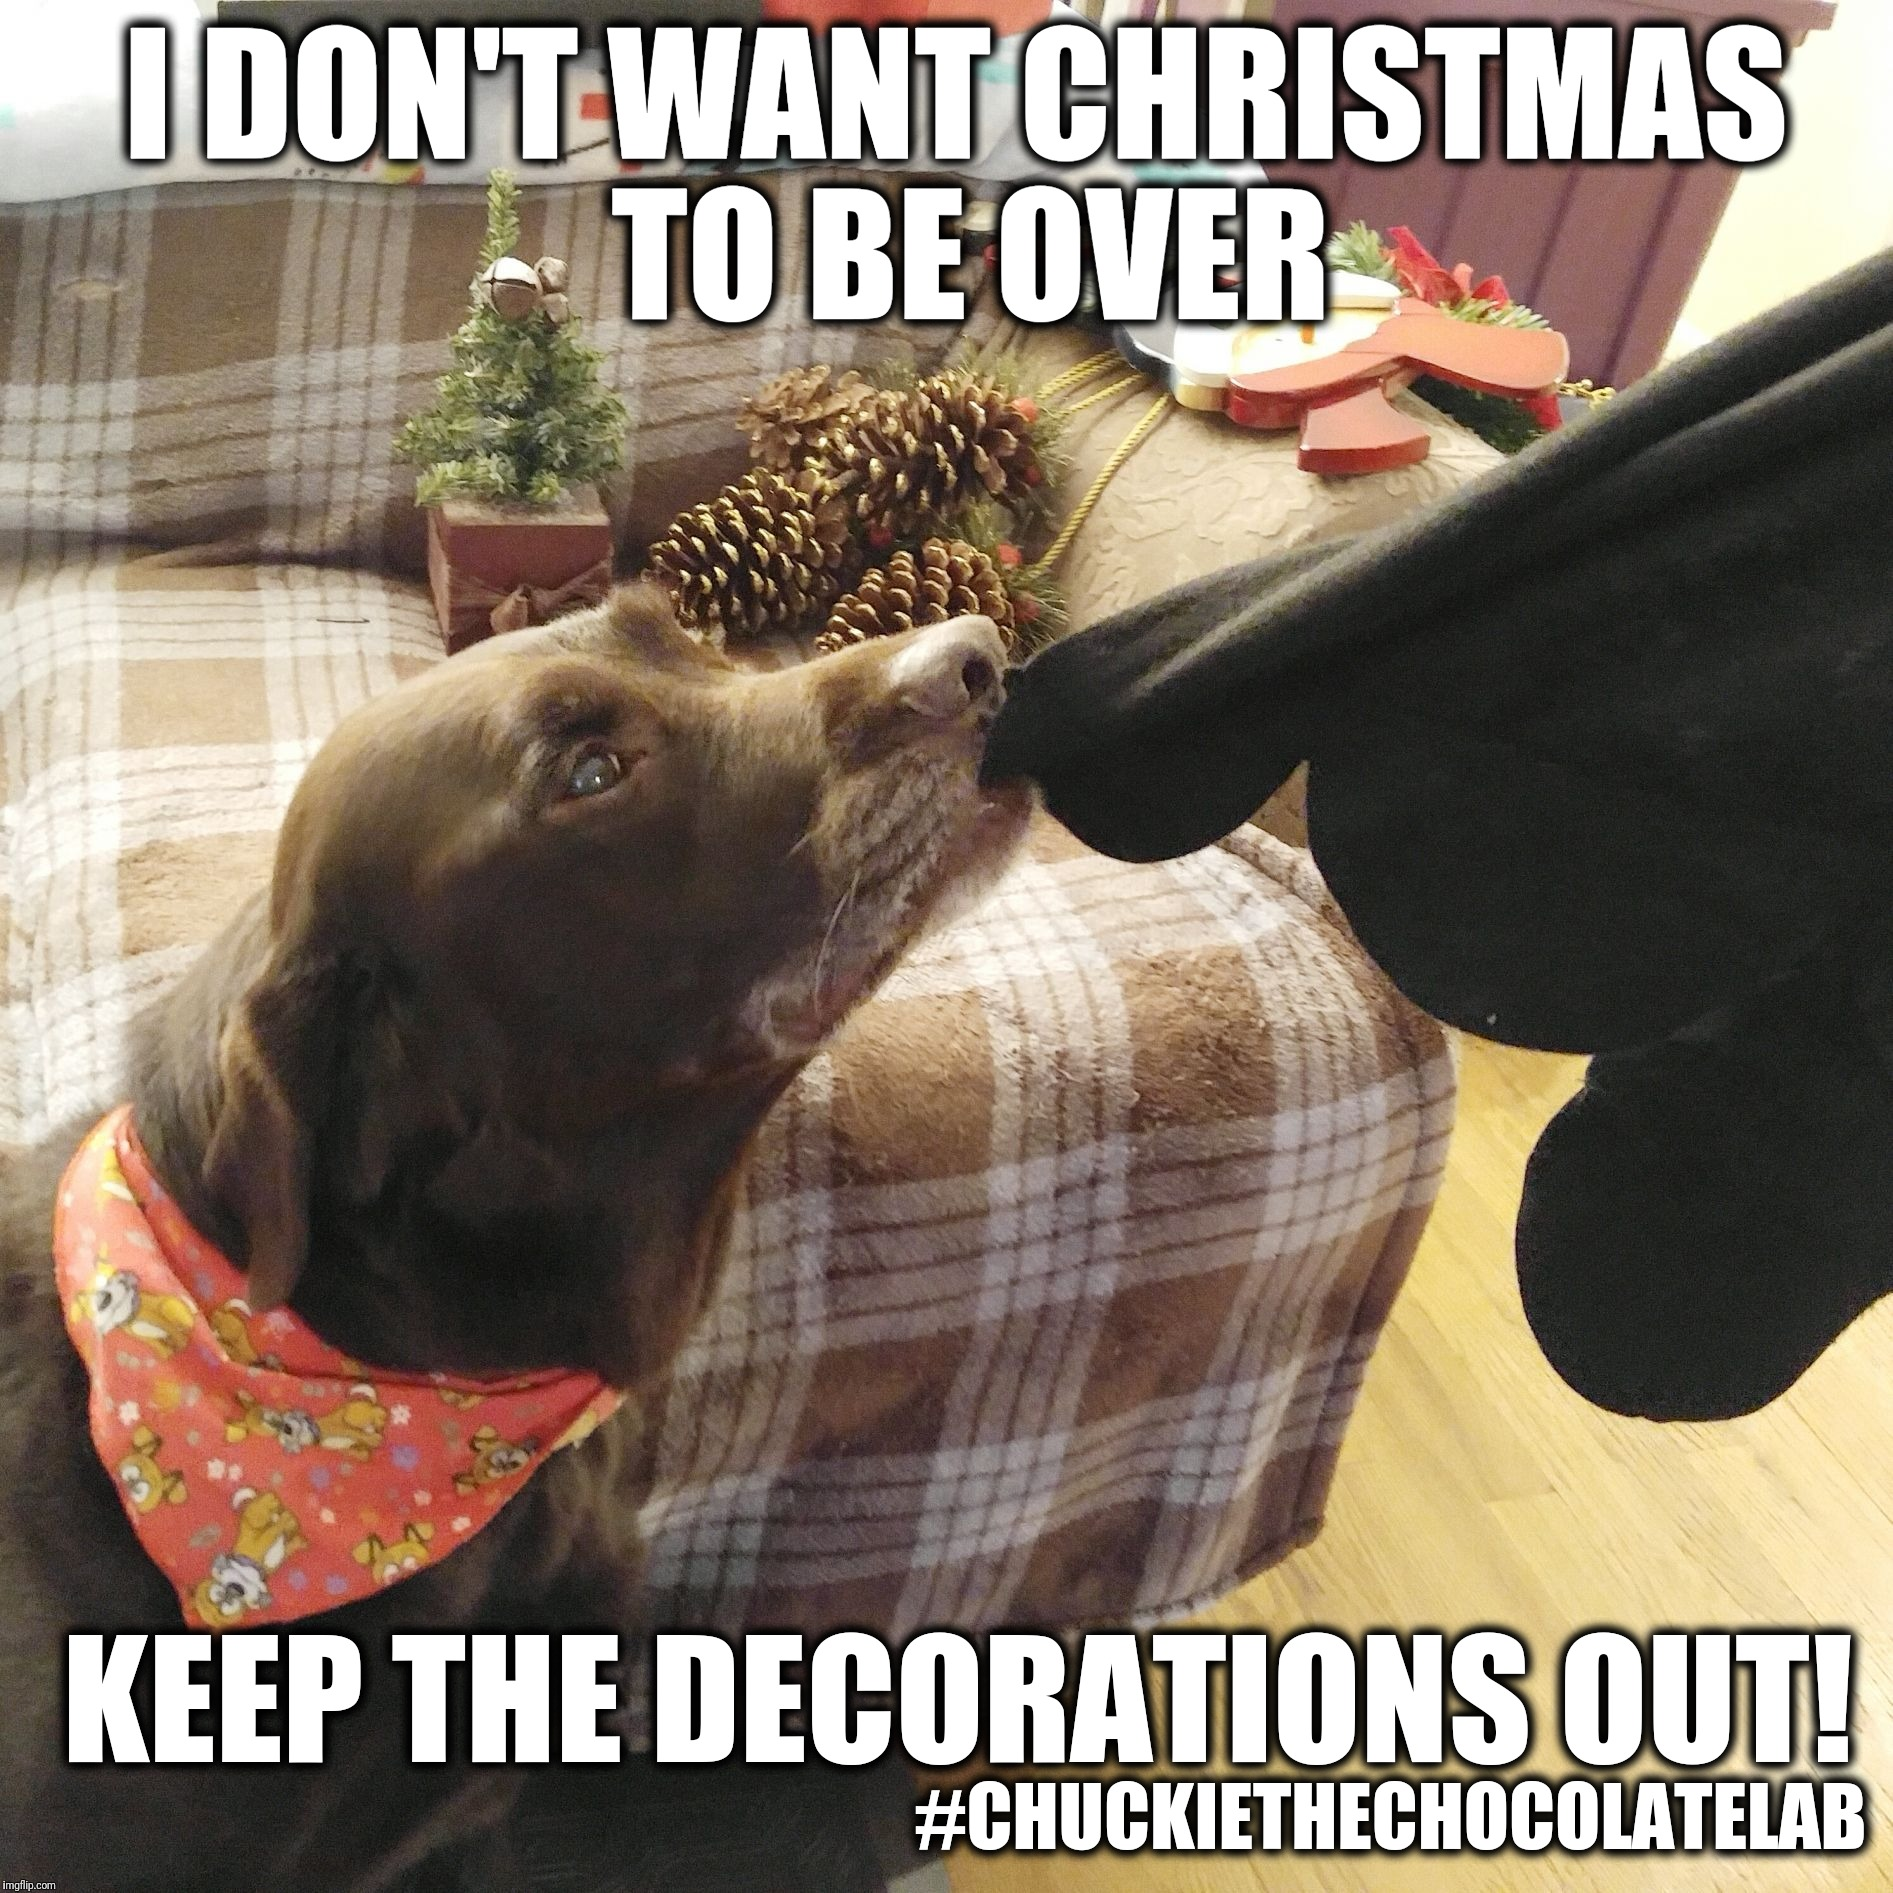 I don't want Christmas to be over | I DON'T WANT CHRISTMAS TO BE OVER #CHUCKIETHECHOCOLATELAB KEEP THE DECORATIONS OUT! | image tagged in chuckie the chocolate lab teamchuckie,christmas,memes,dogs,funny | made w/ Imgflip meme maker